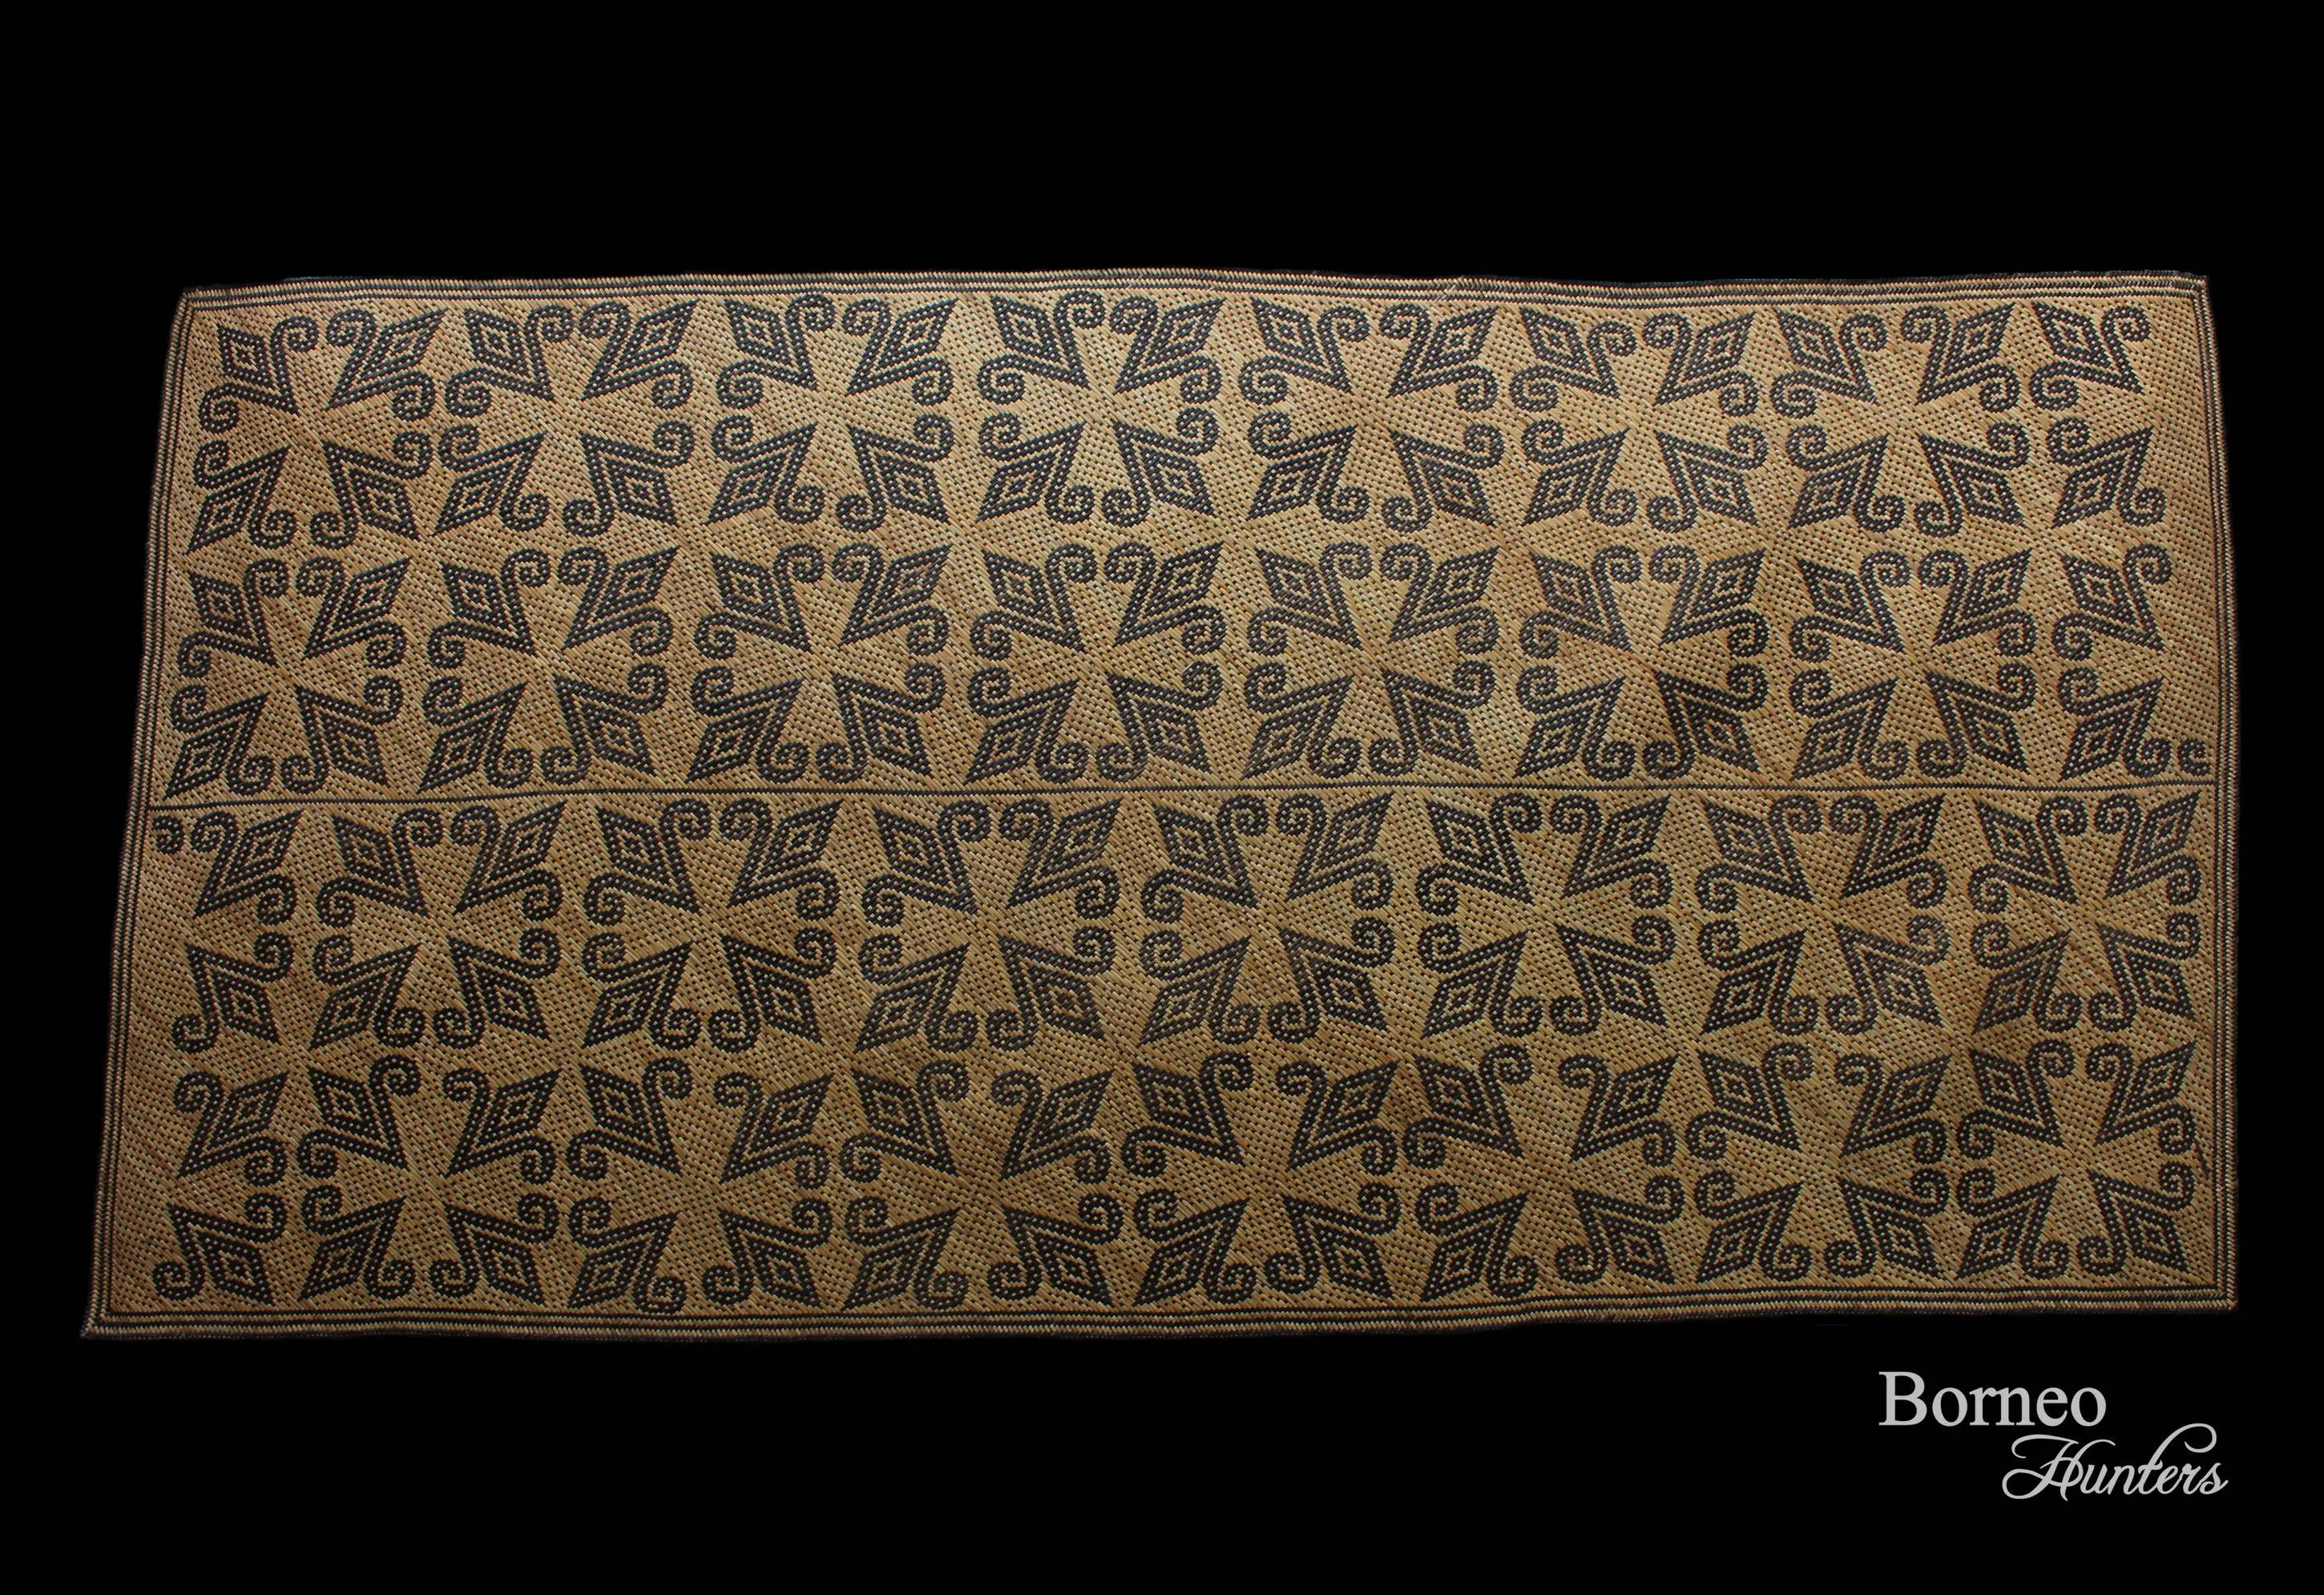 Tapis Rotin Tapis En Rotin Tribal De Bornéo 206cm Traditionnel à La Main Tissé Penan Punan Tapis Tressés Art De Bornéo Collection Wall Decor